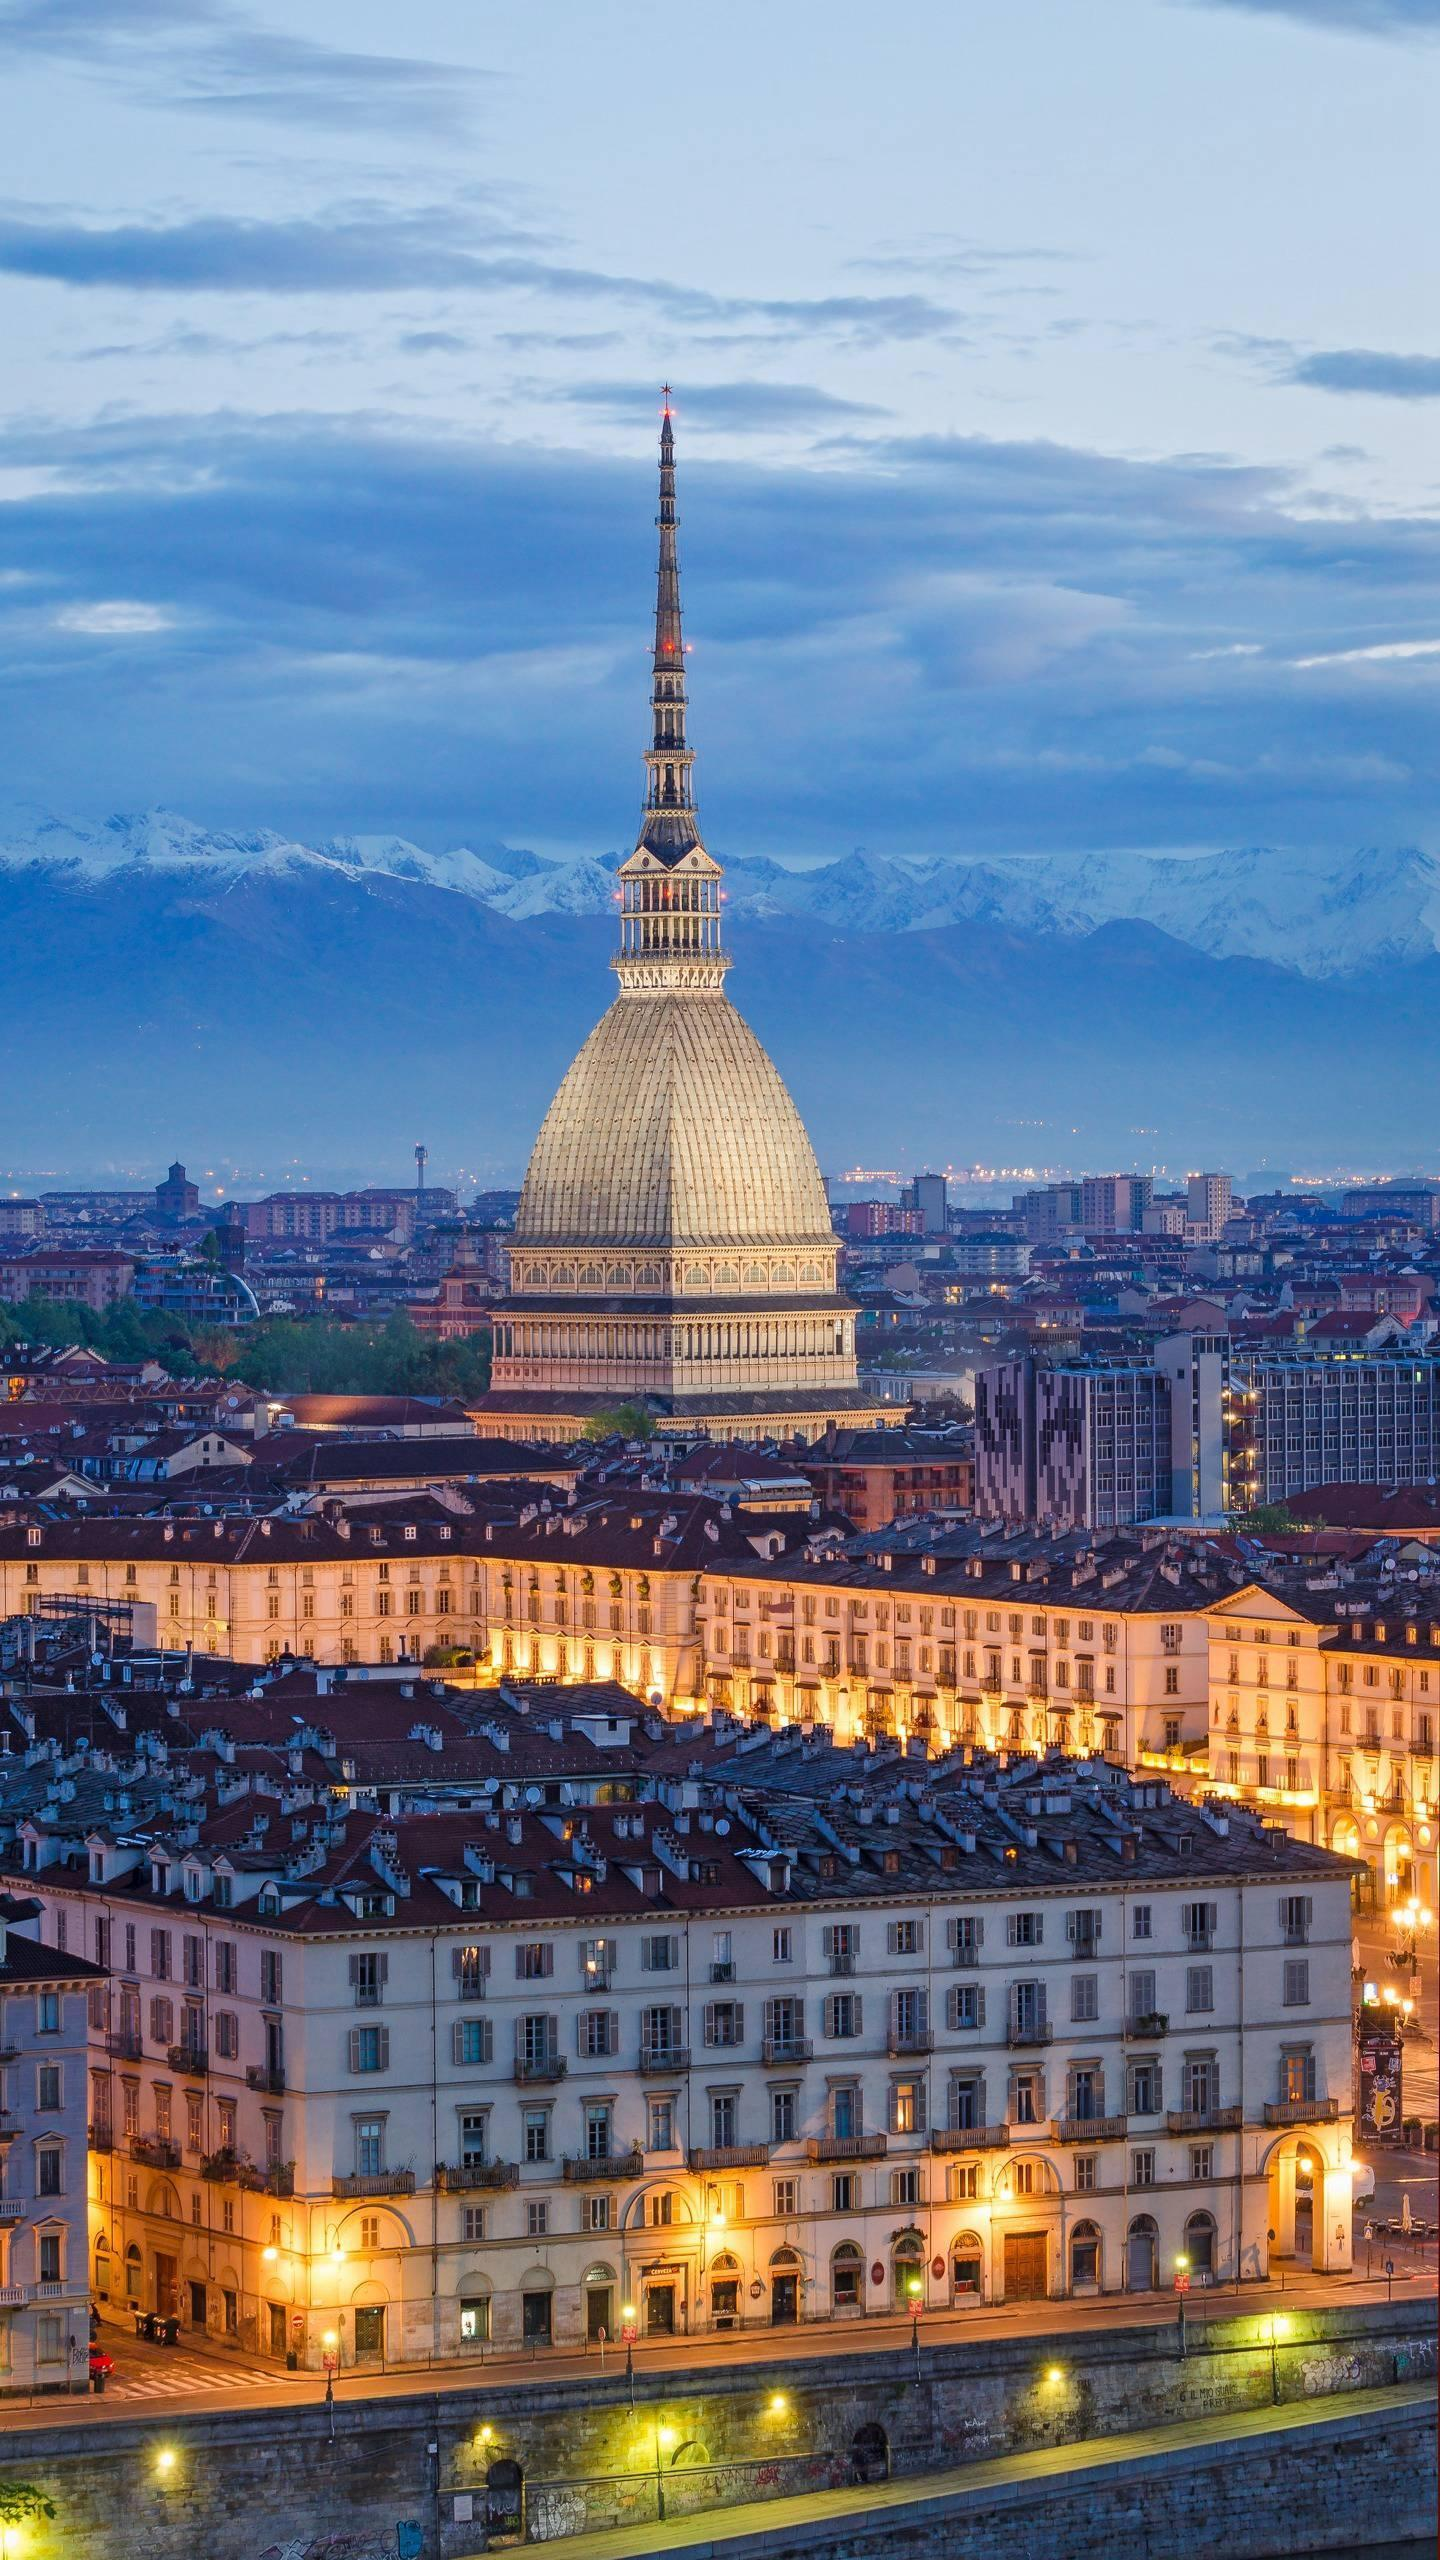 Turin, Italy. The Mole Antonelliana is the most important artistic and cultural center of Turin, and the top of the tower is a great place to admire the Alps.